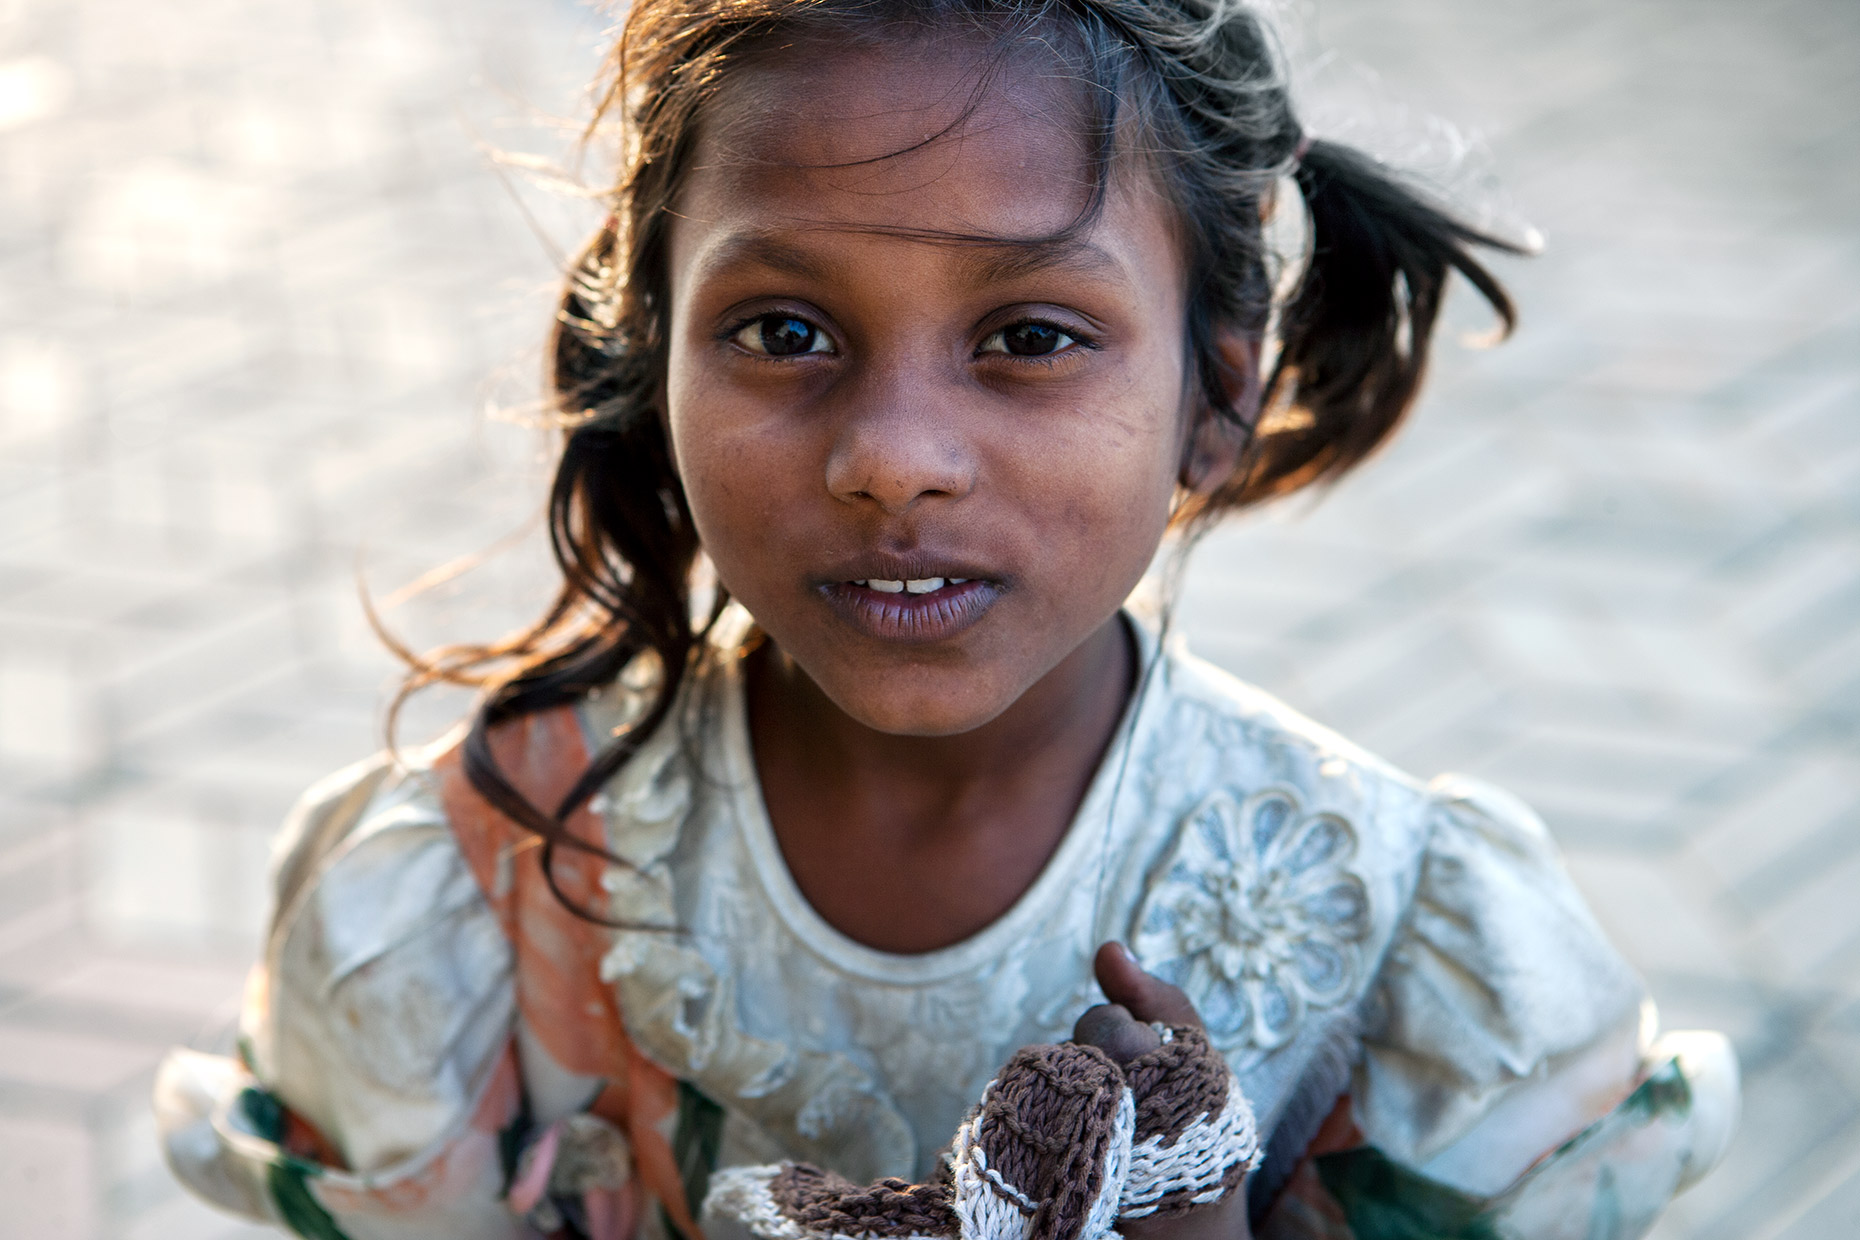 Mumbai Street Child